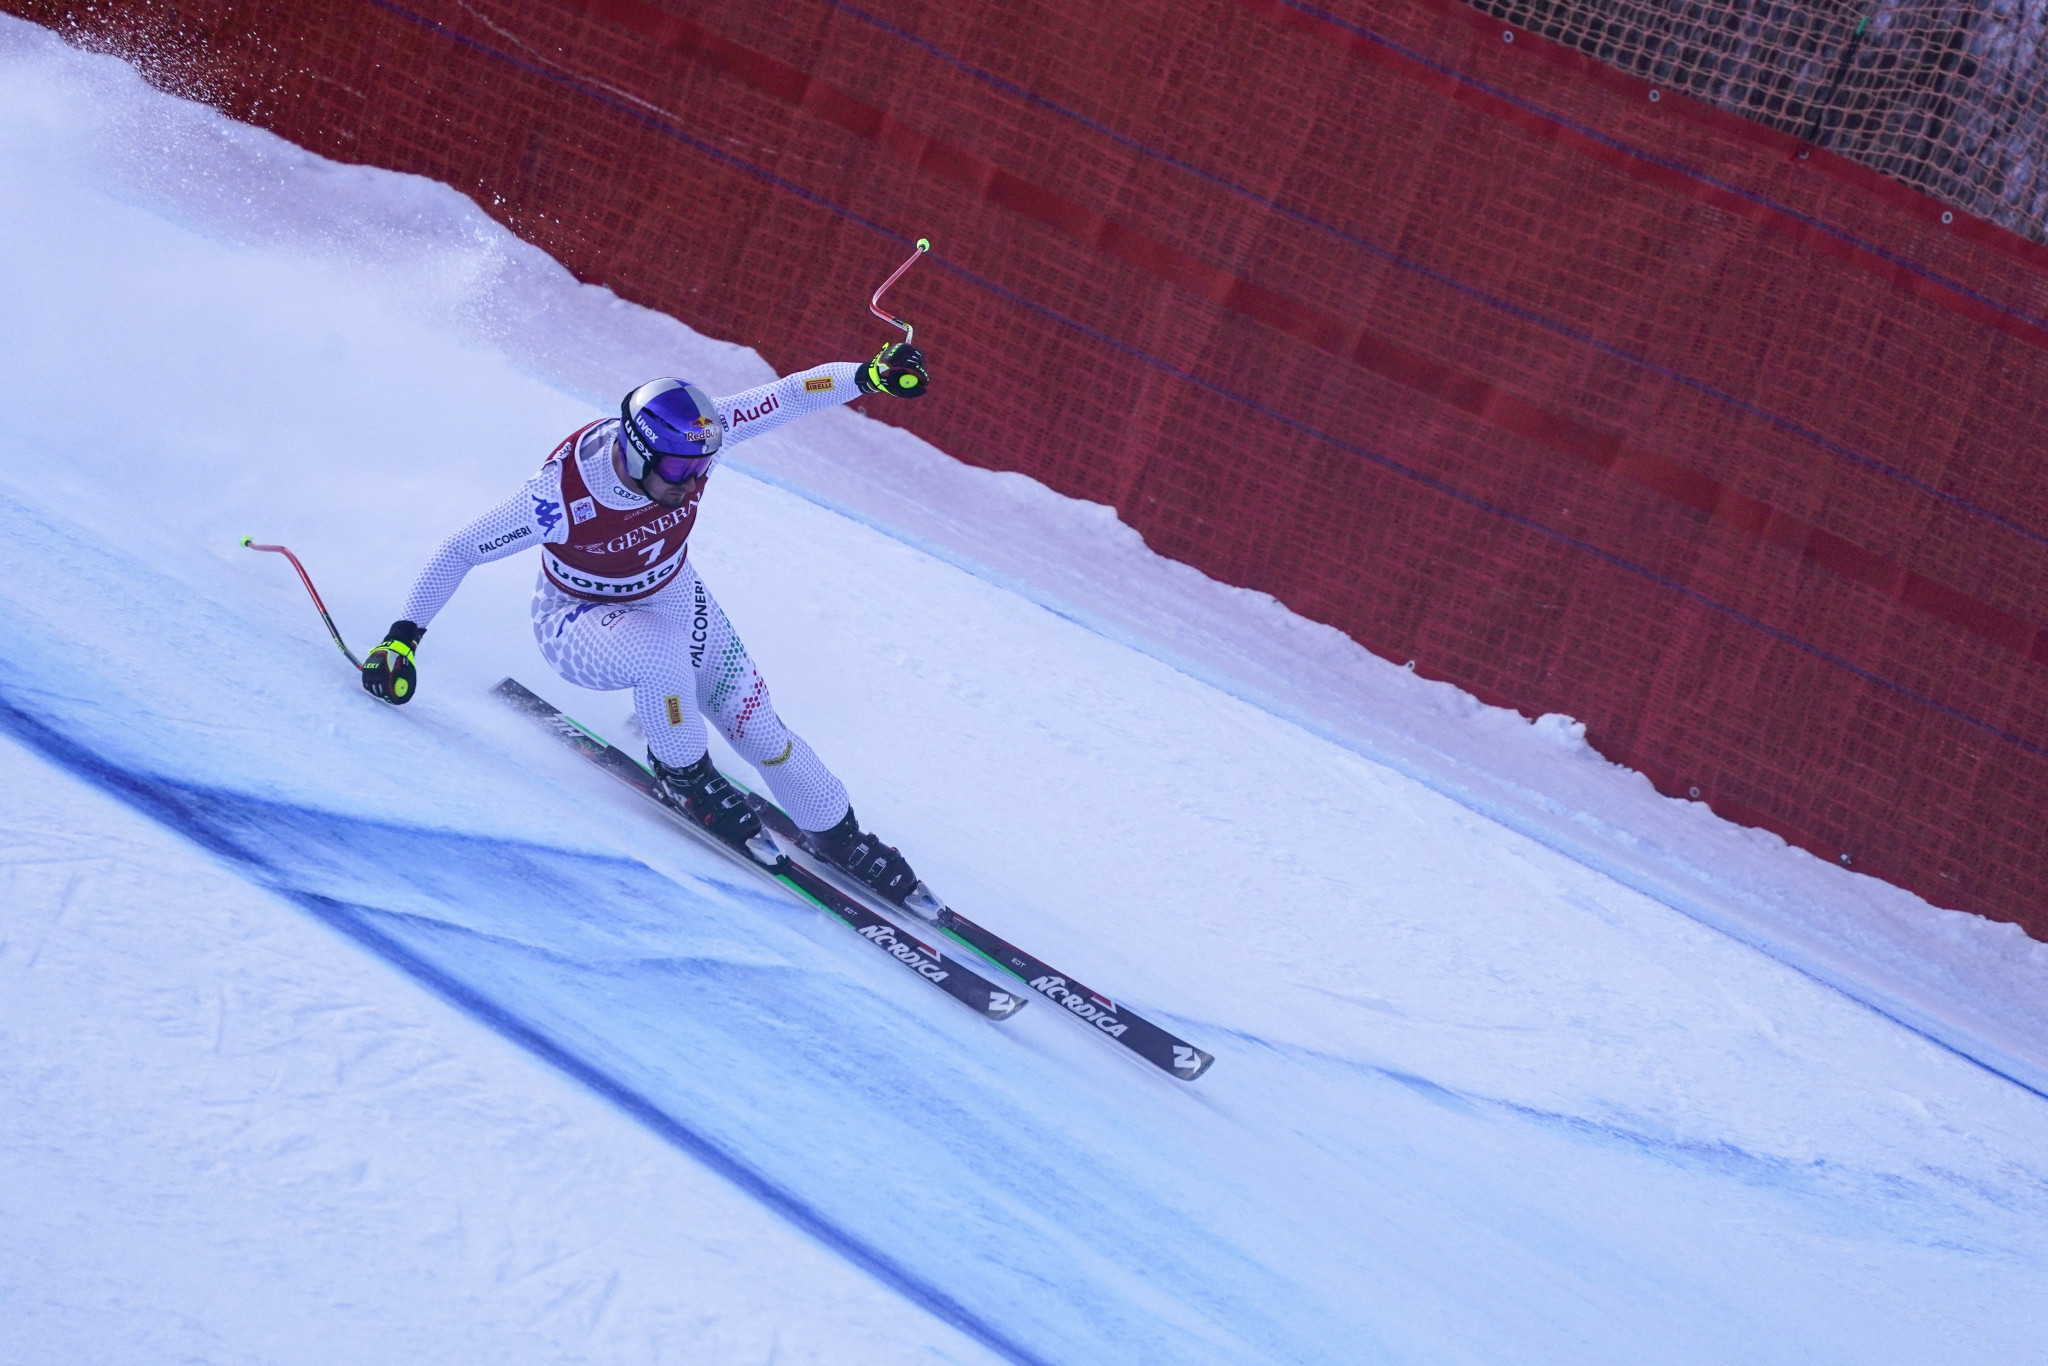 Italian Dominik Paris won the downhill event at the men's Alpine Skiing World Cup in Bormio ©Getty Images